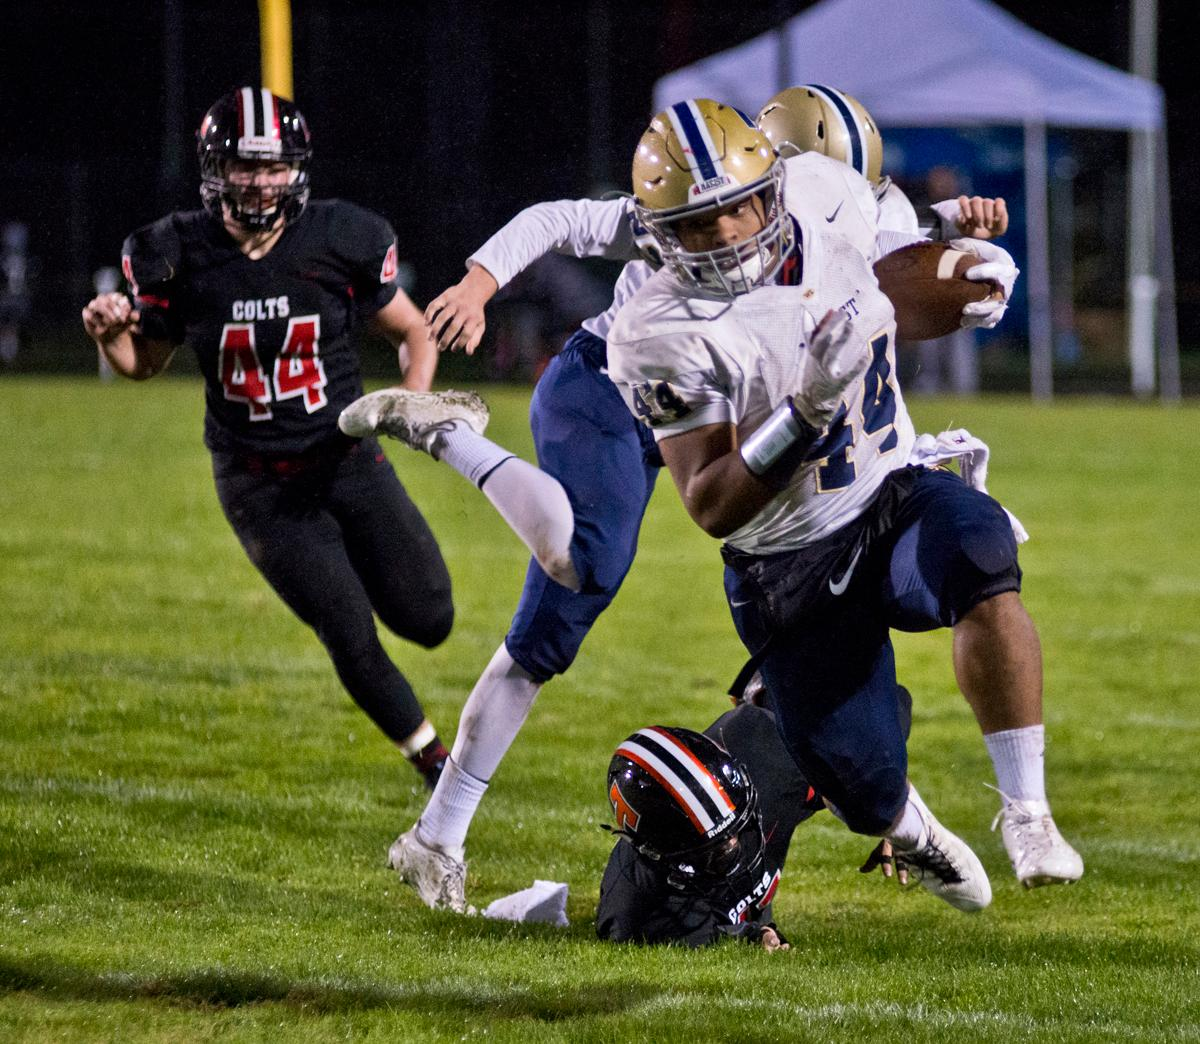 Marist Spartans running back Aavonte Clark (#44) racks up yards against the Thurston Colts.  Thurston defeated Marist 50 to 14 to seal the second position in their conference. Photo by Dan Morrison, Oregon News Lab